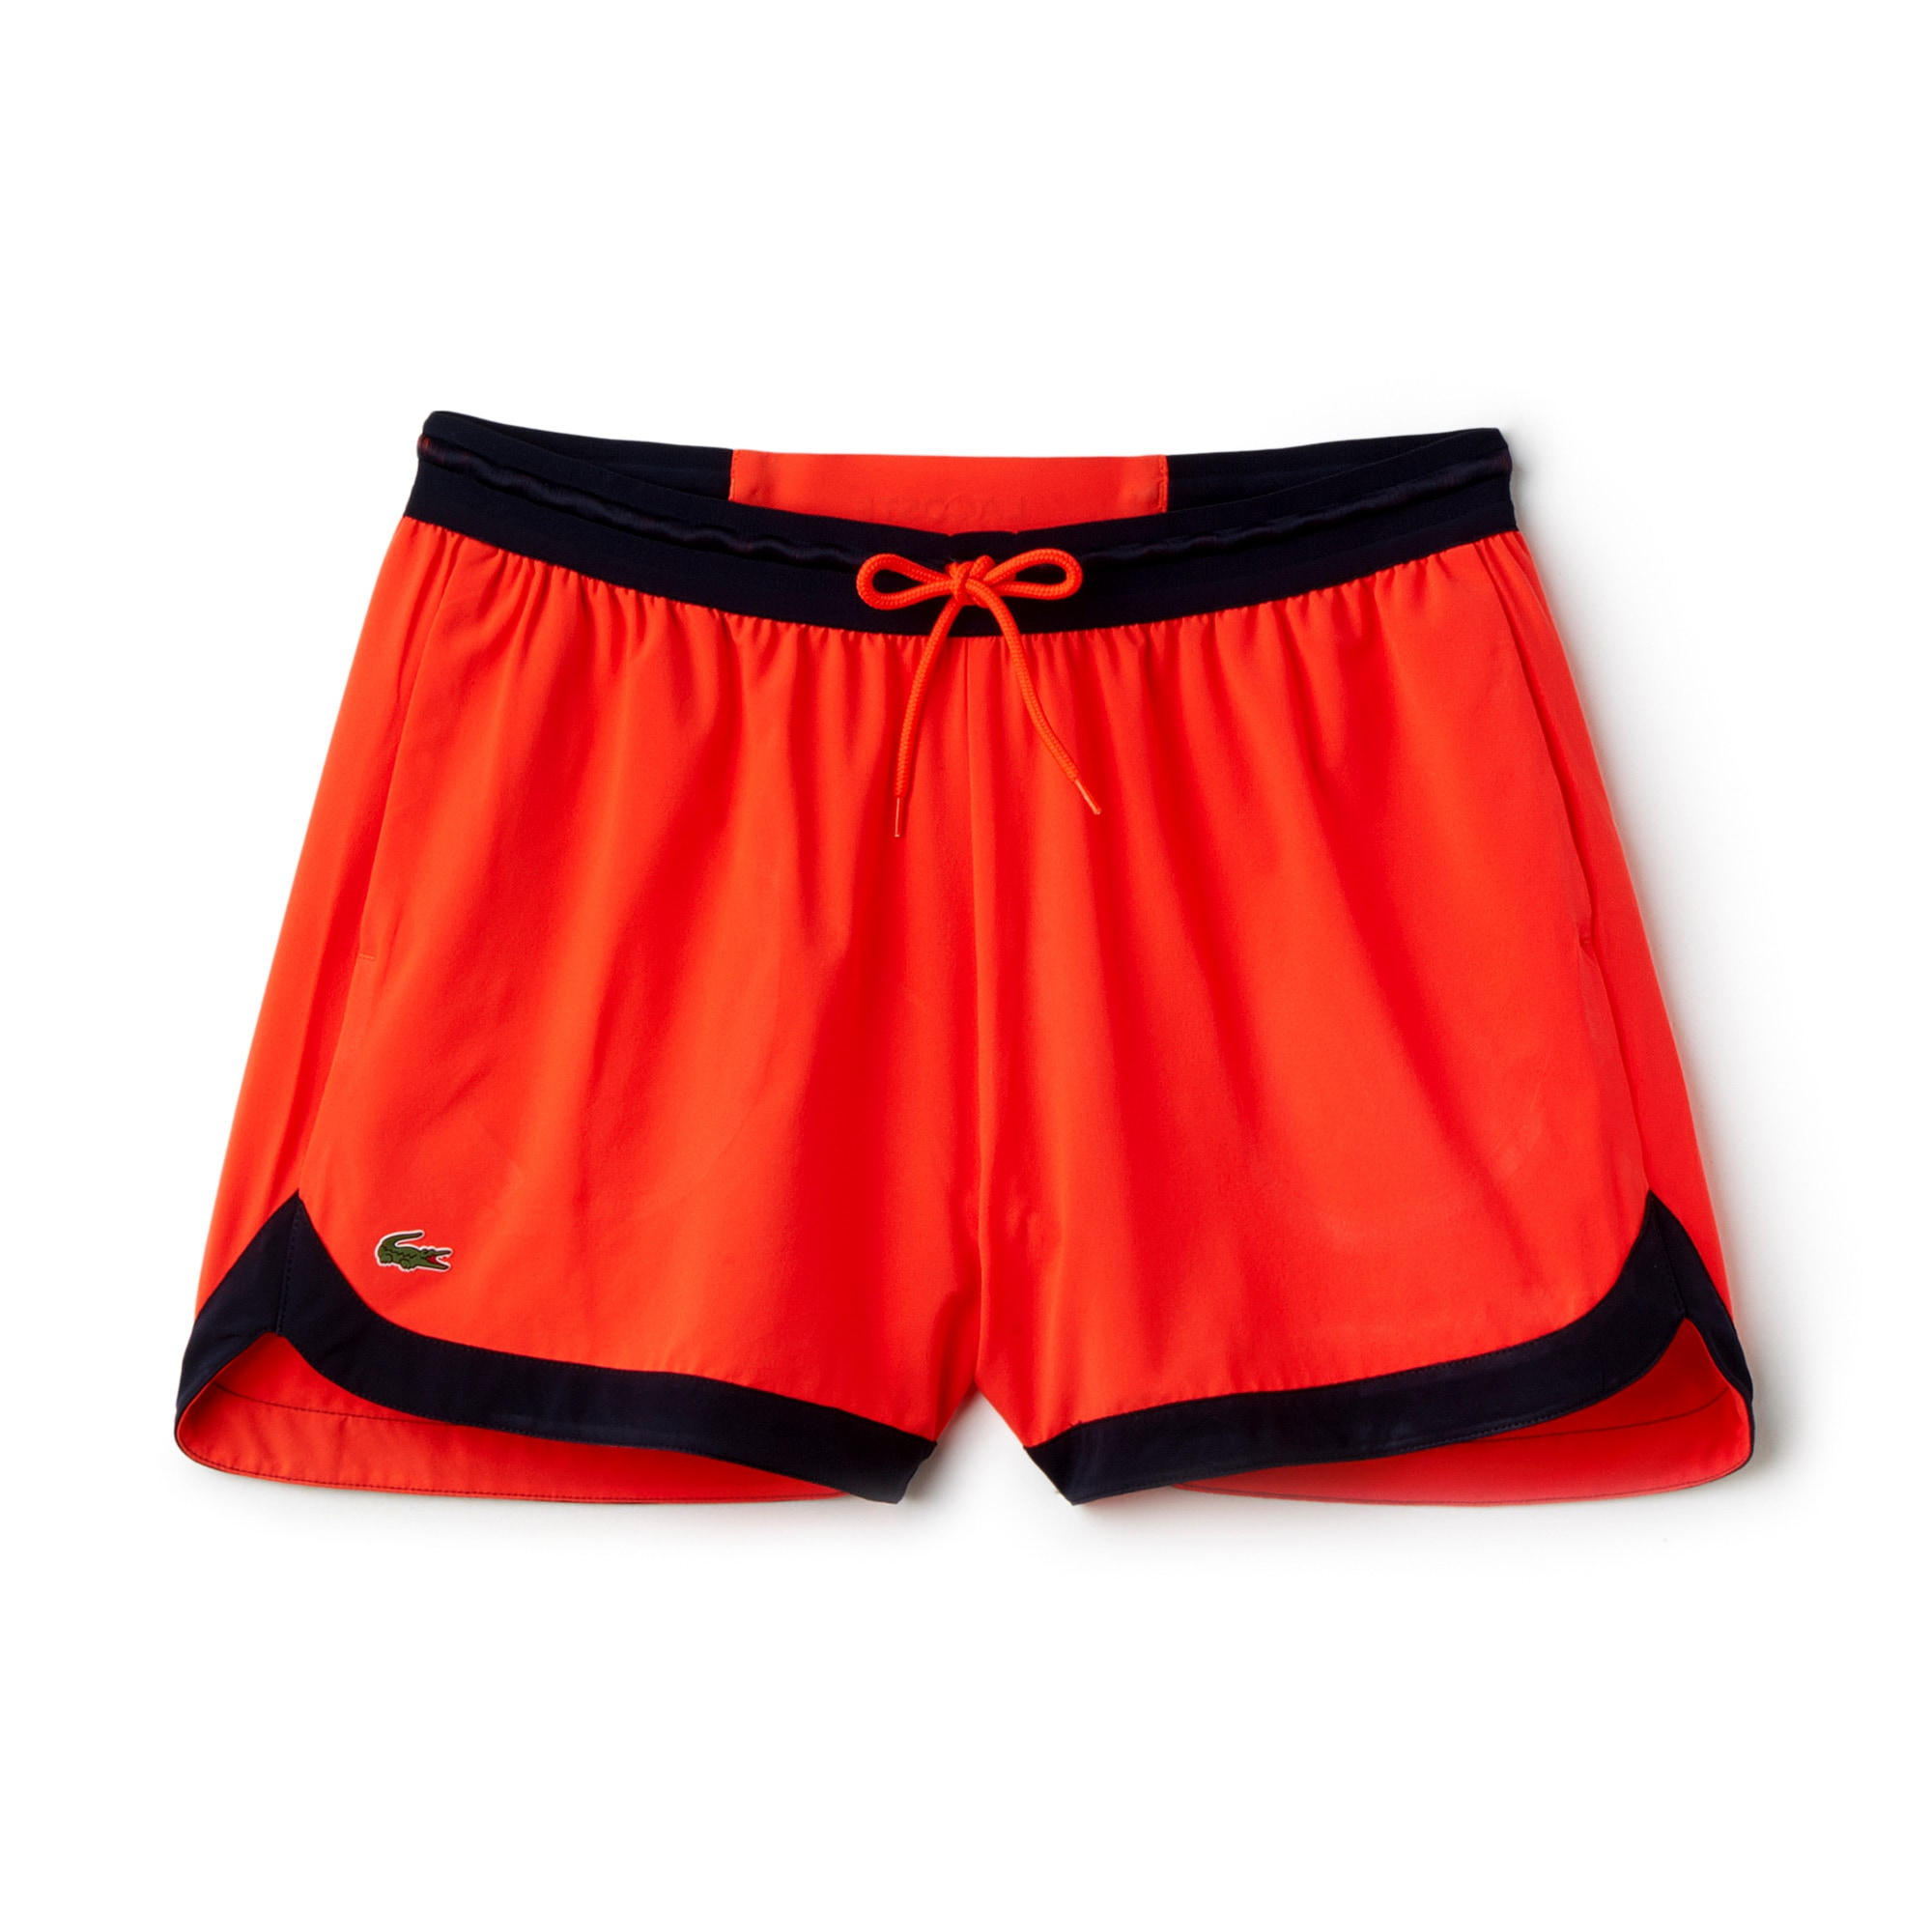 Women's SPORT Colorblock Tennis Shorts